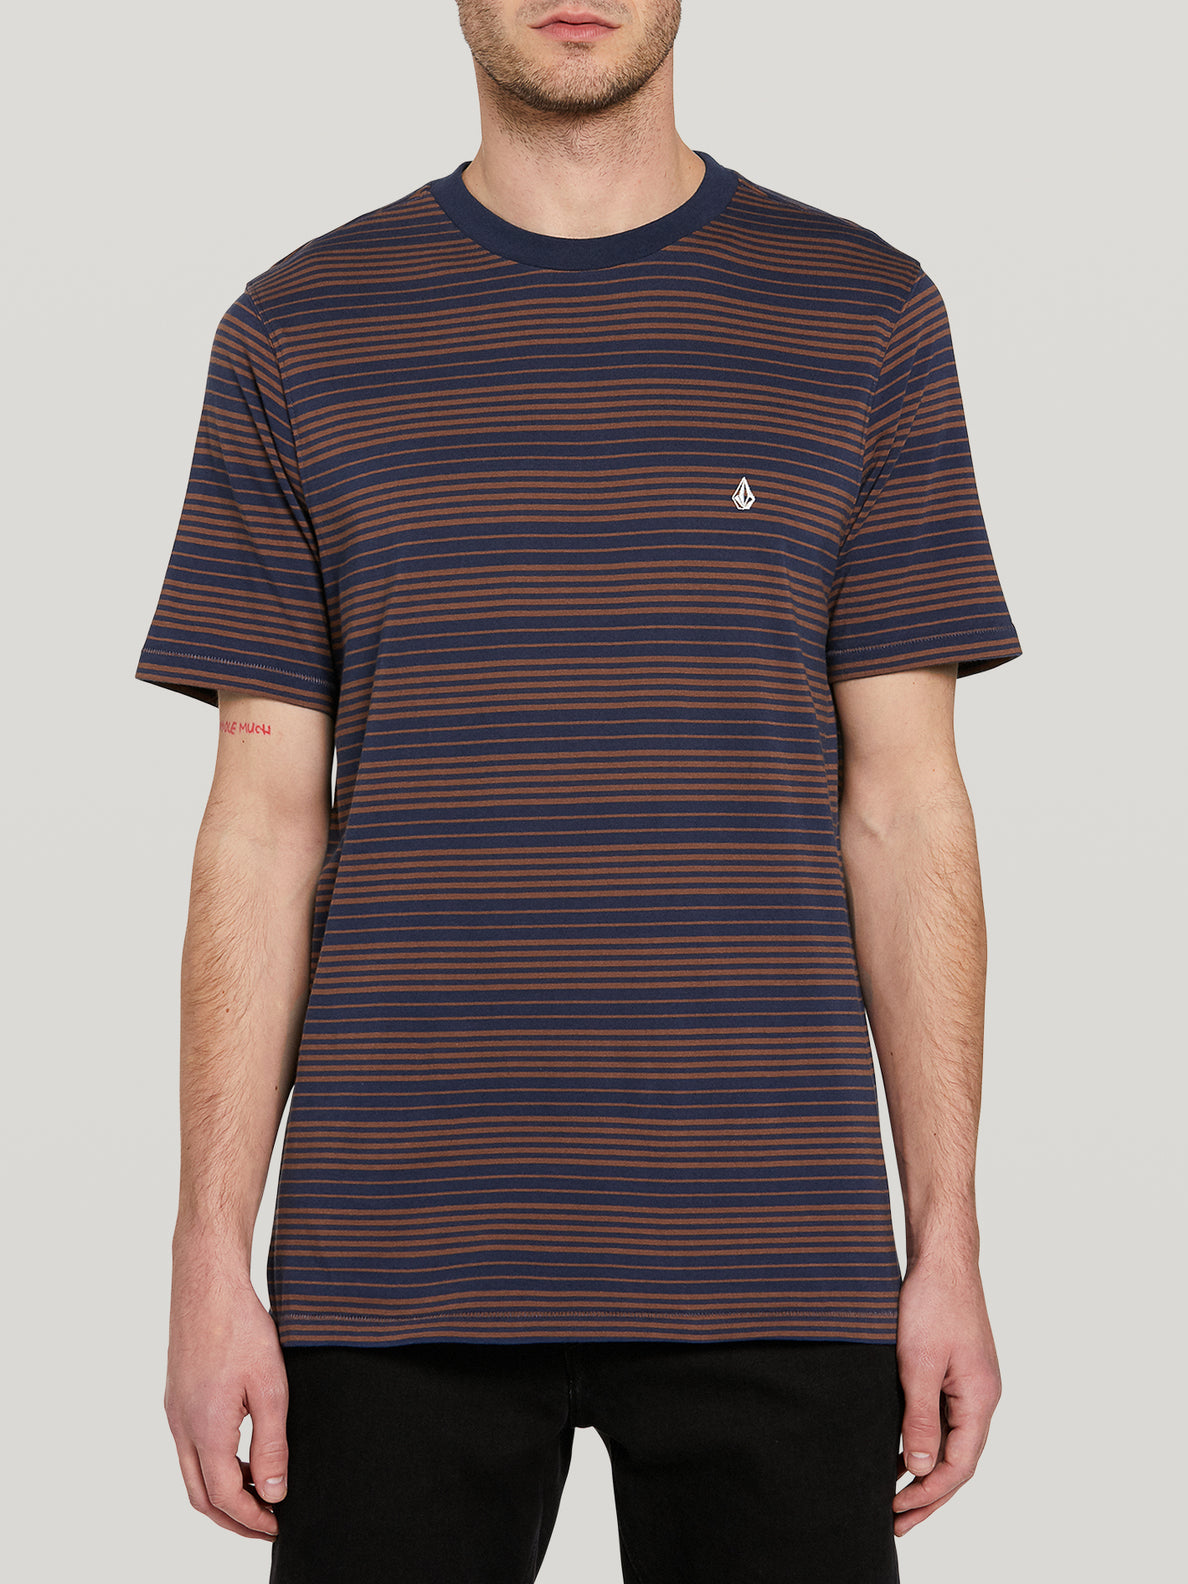 Pillars Stripe Crew S/s Atlantic (A0142002_ATL) [F]